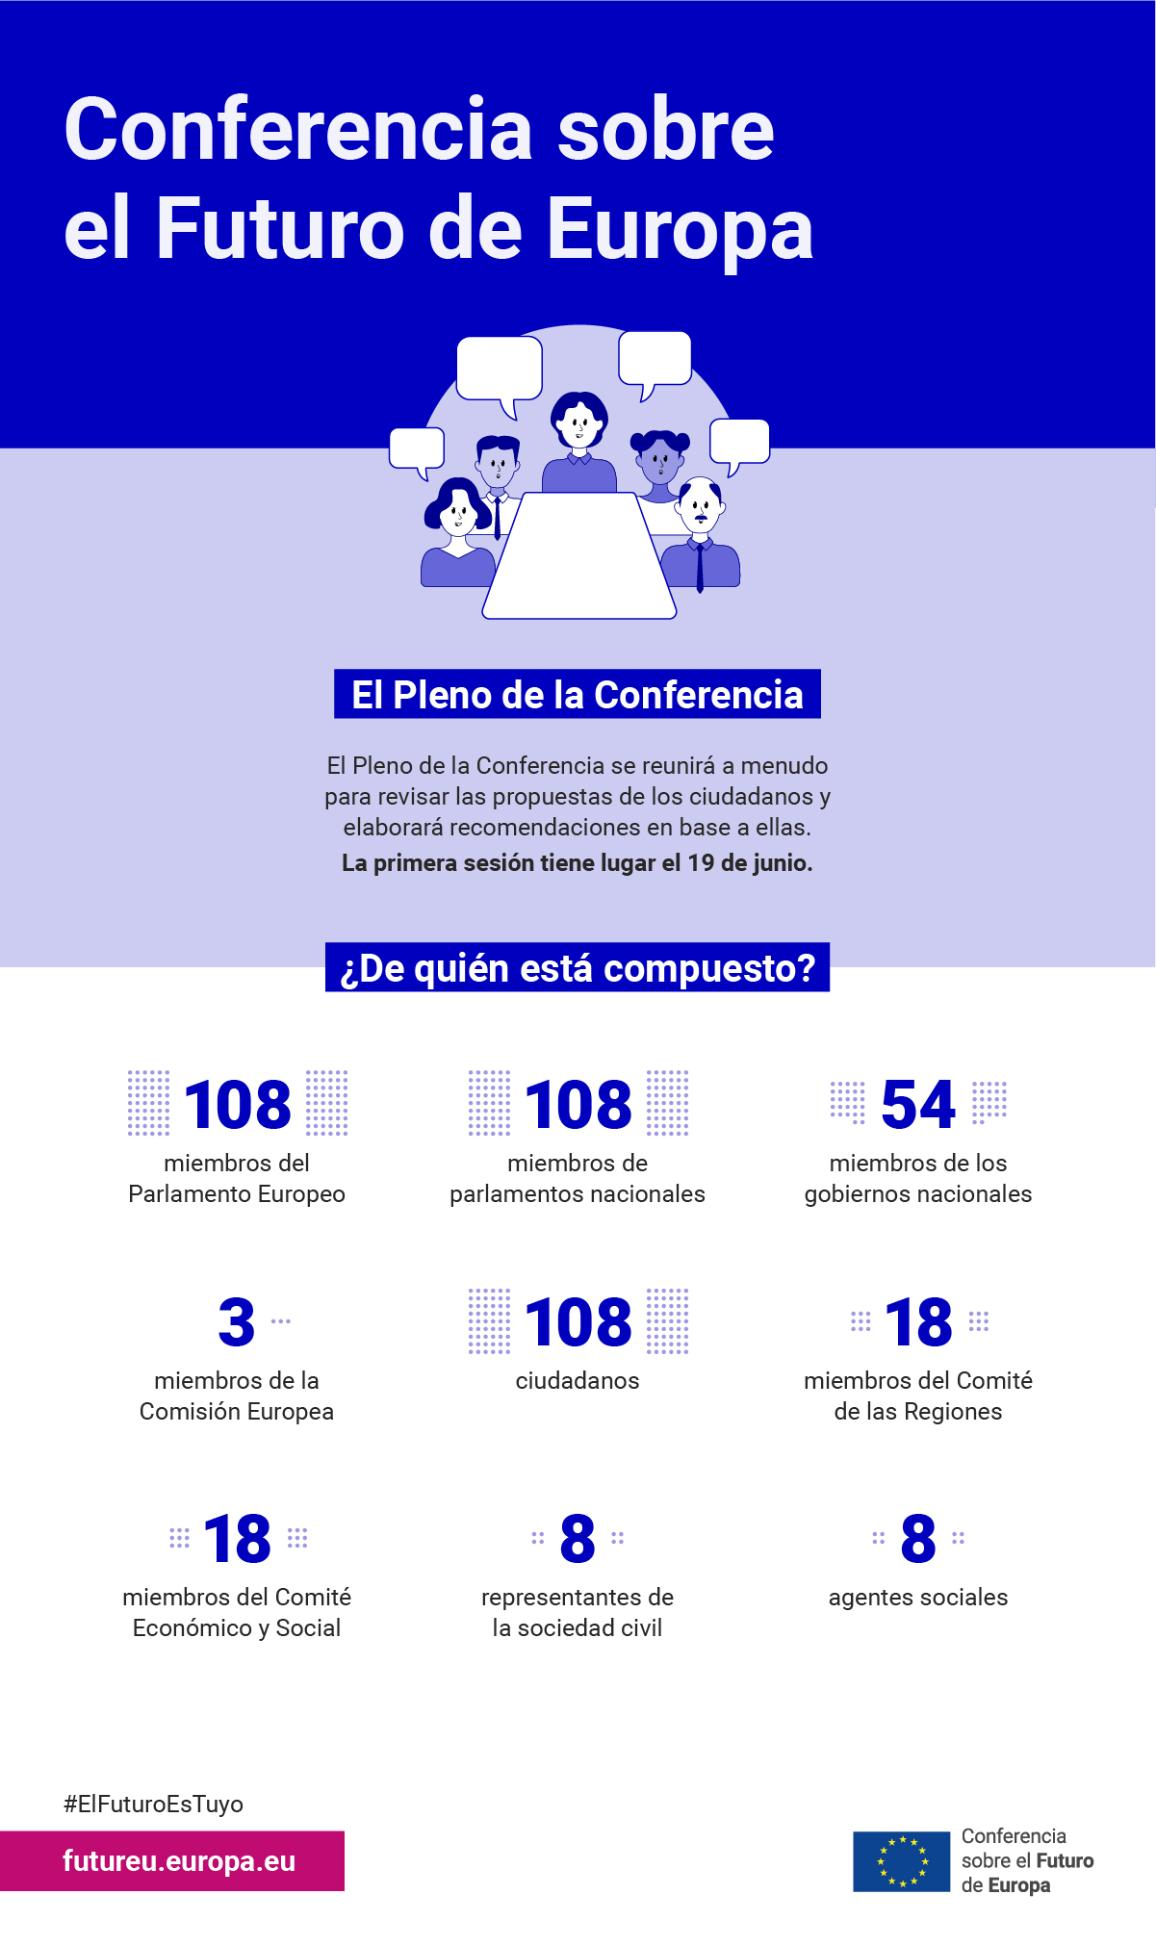 Infographic explaining the Conference on the Future of Europe